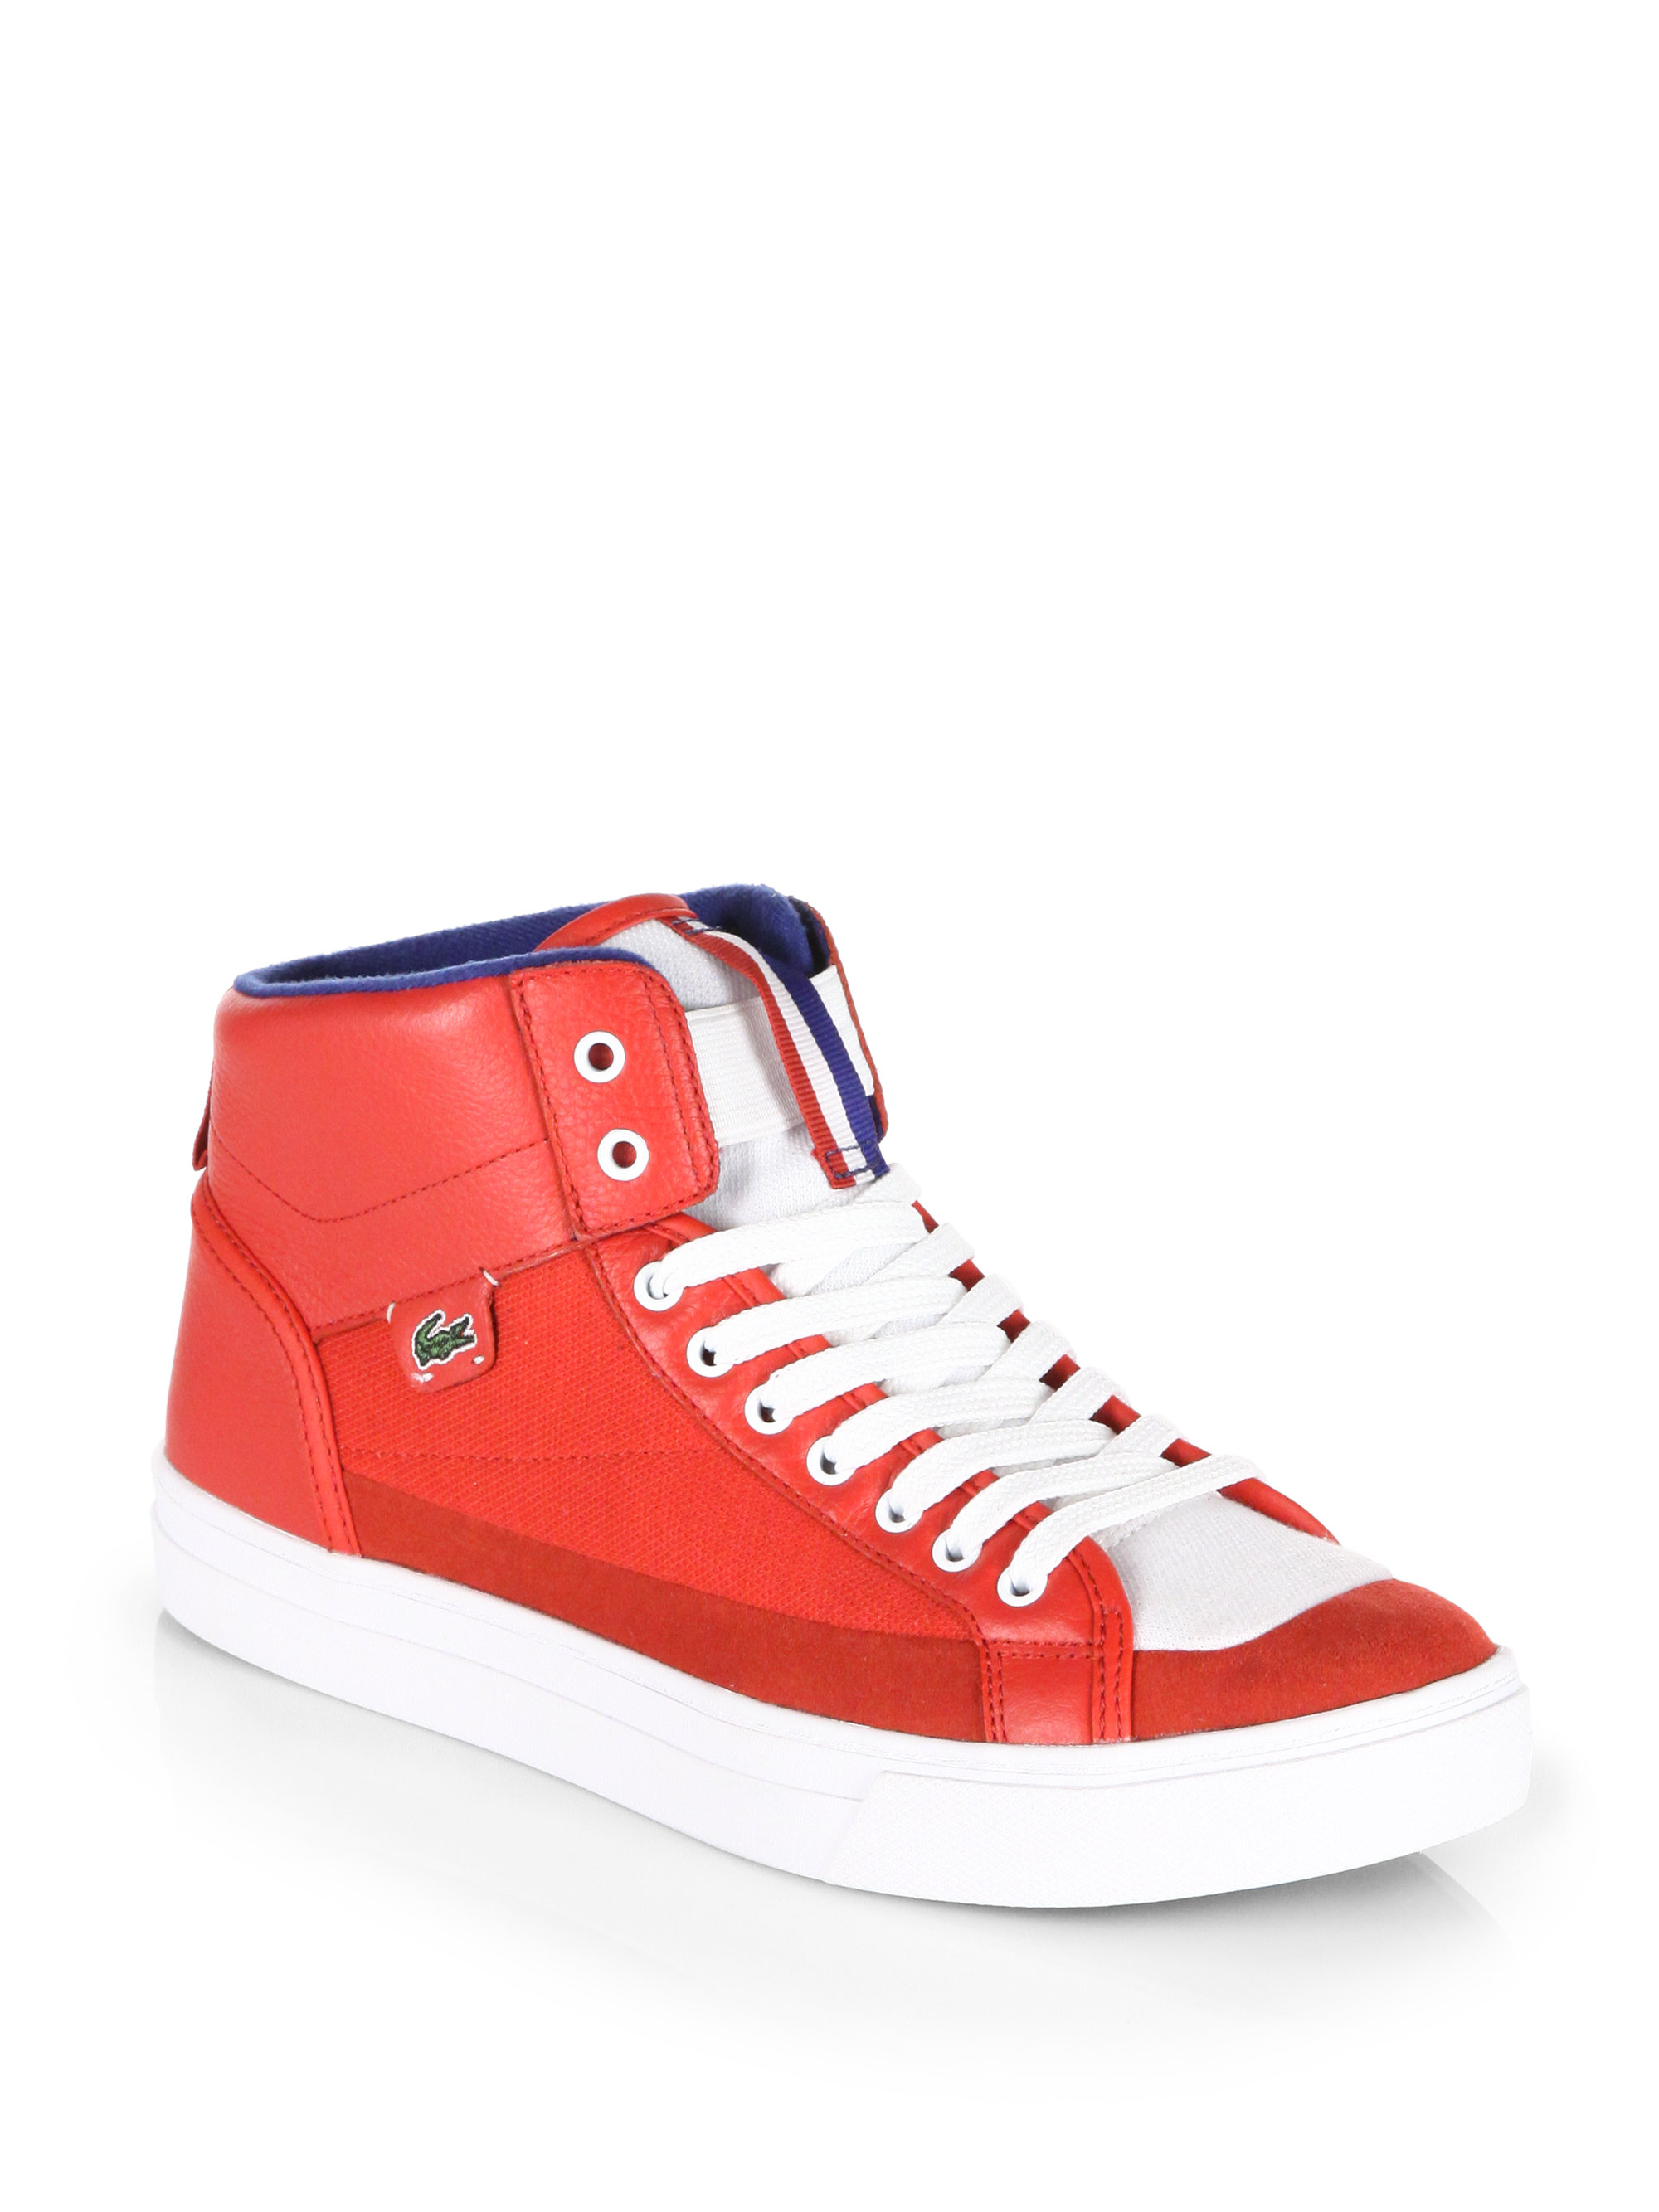 lacoste berrick mid high top sneakers in red for men lyst